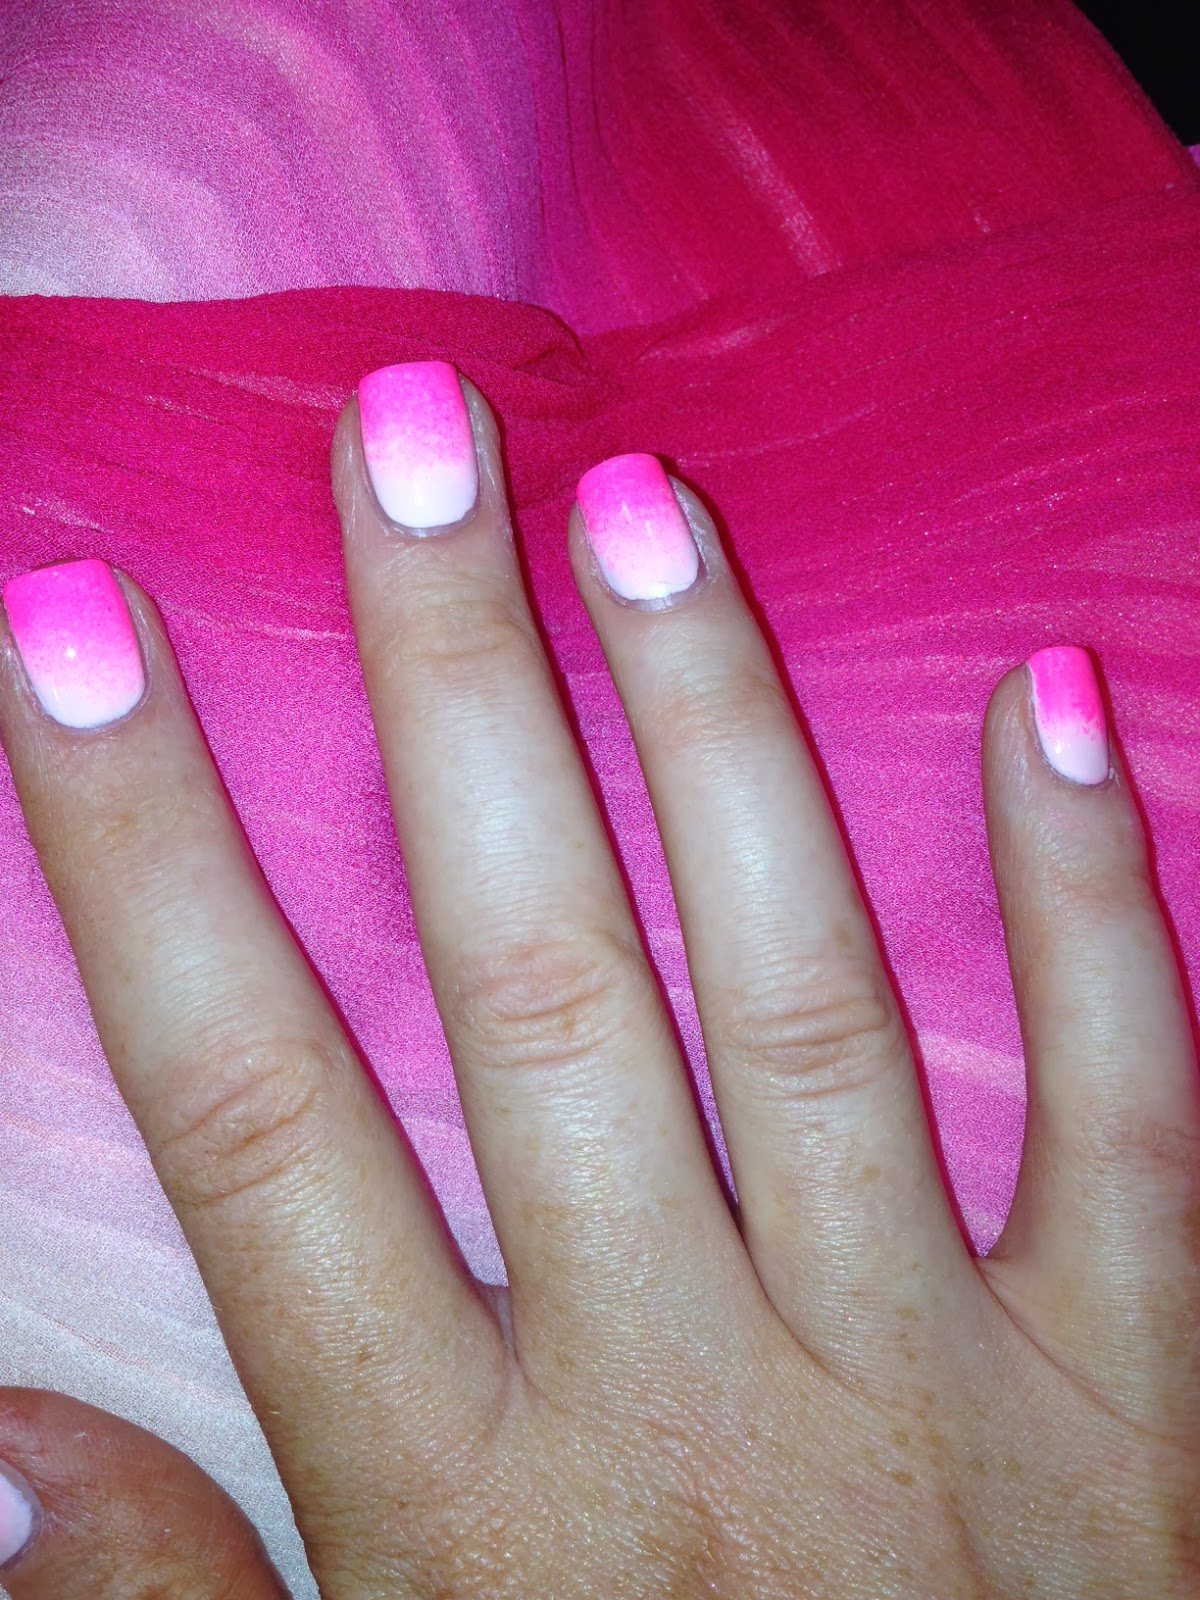 NailsByNumbers: NOTD! Ombre Nails and Actuary Ball